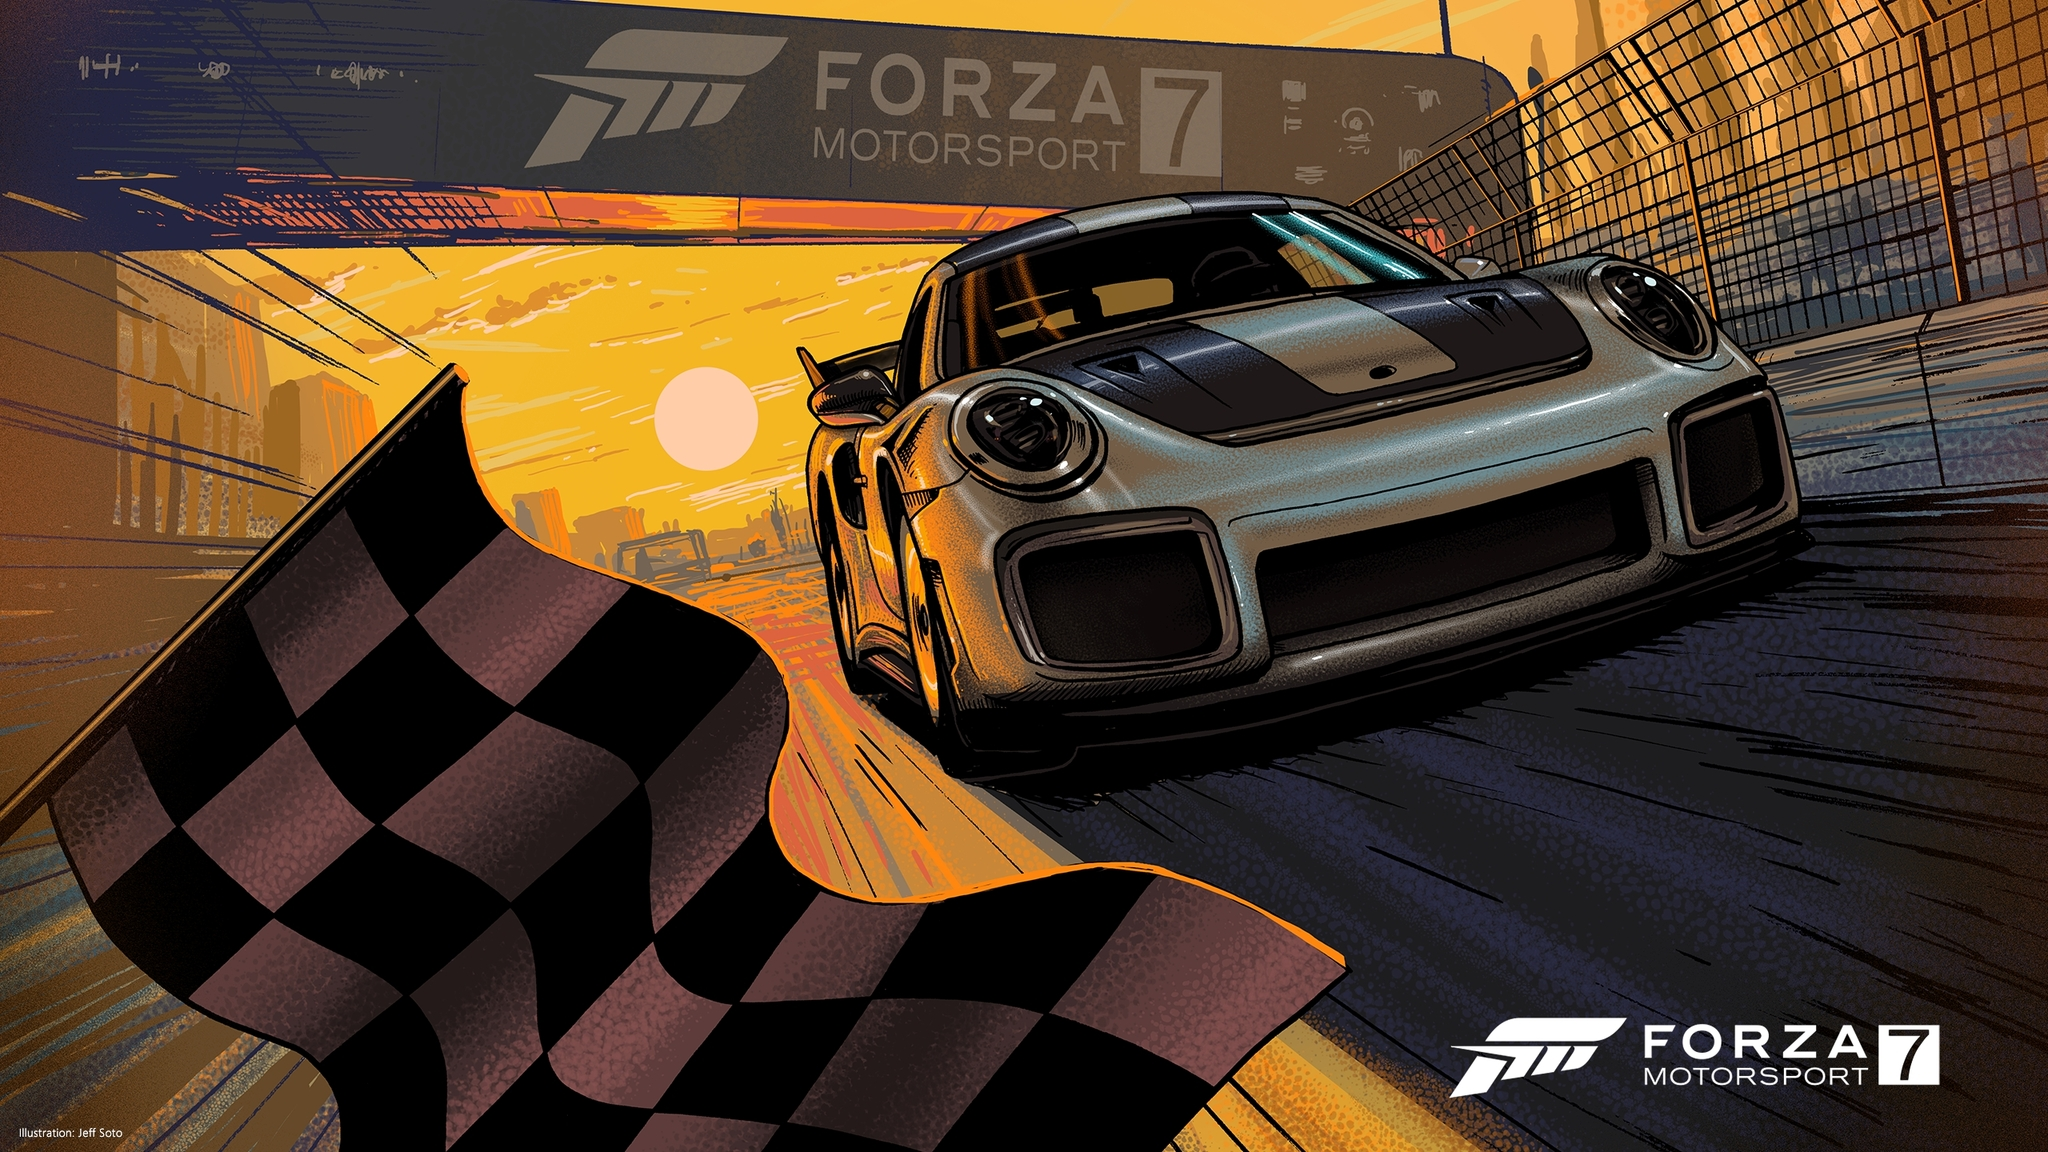 2048x1152 forza motorsport 7 artwork 2048x1152 resolution hd 4k wallpapers images backgrounds - Forza logo wallpaper ...